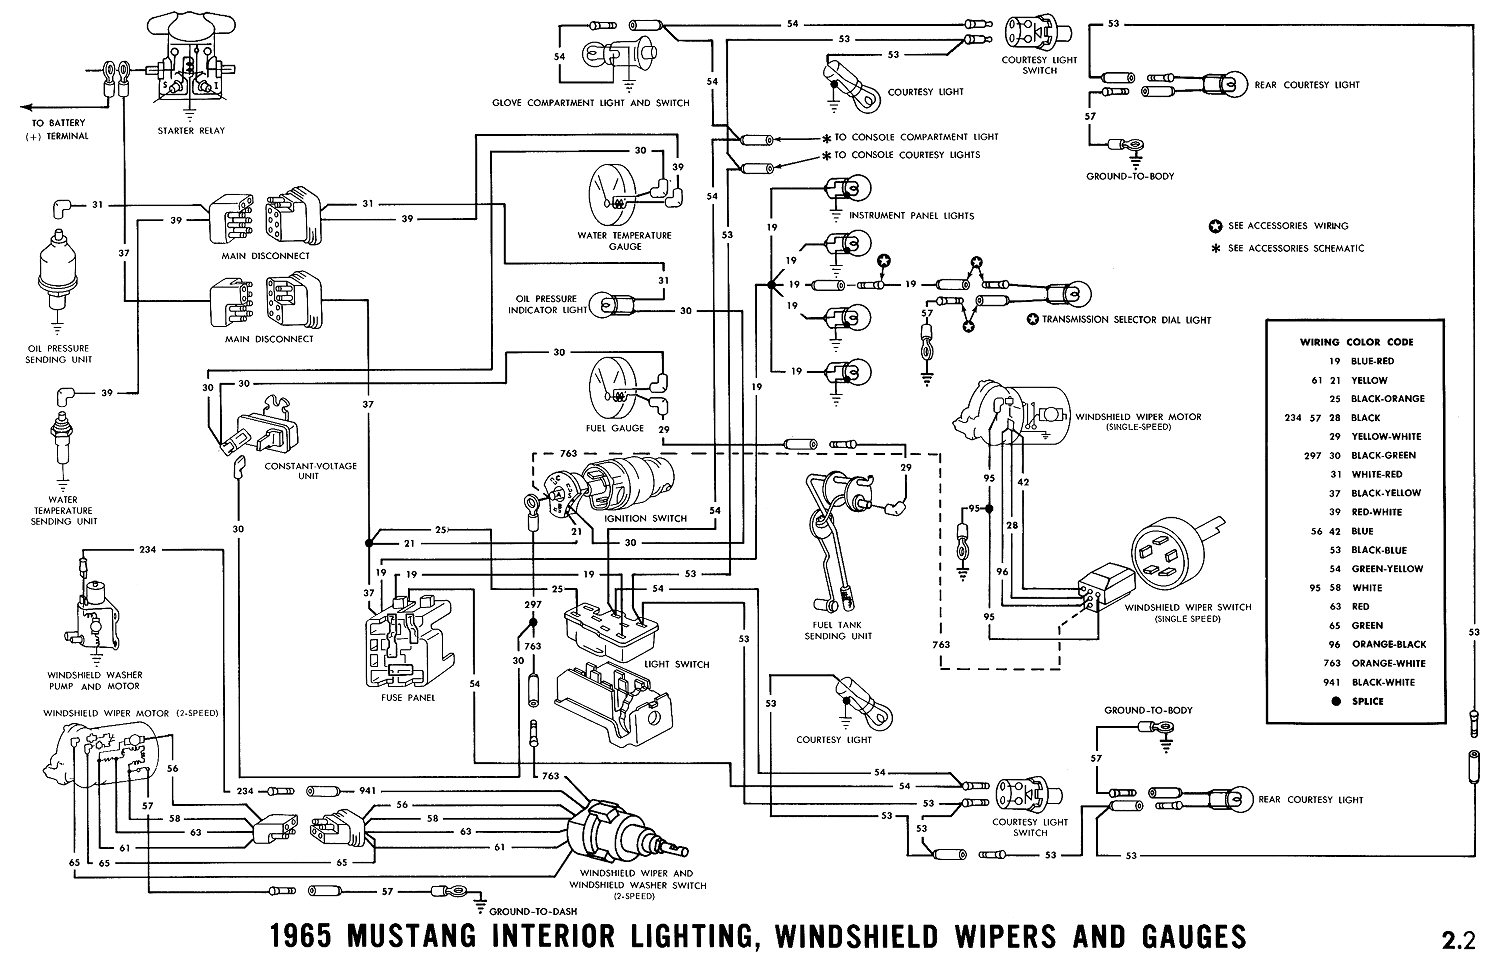 Ford Mustang Wiring Harness Archive Of Automotive Diagram 2003 Stereo 1965 Diagrams Box Rh Cad Fds Co Uk 1968